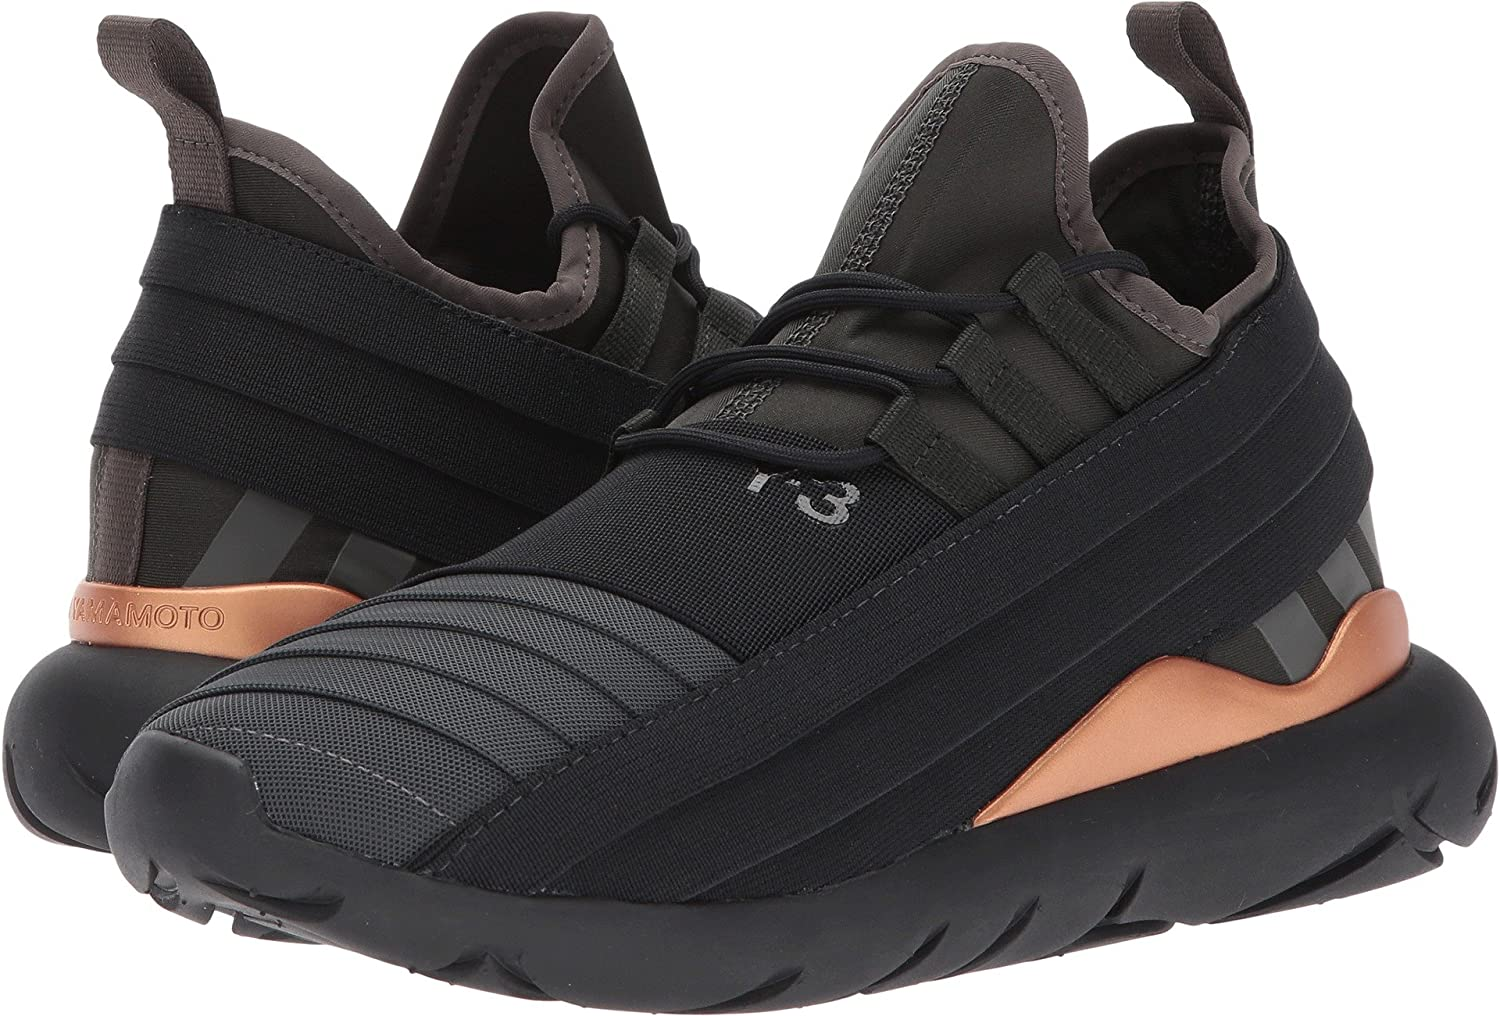 super popular f7bed dbf21 adidas Y-3 by Yohji Yamamoto Women s Qasa Elle Lace 2.0 Black Olive-Y3 Black  Olive Y-3 Core Black Oxford  Amazon.co.uk  Shoes   Bags